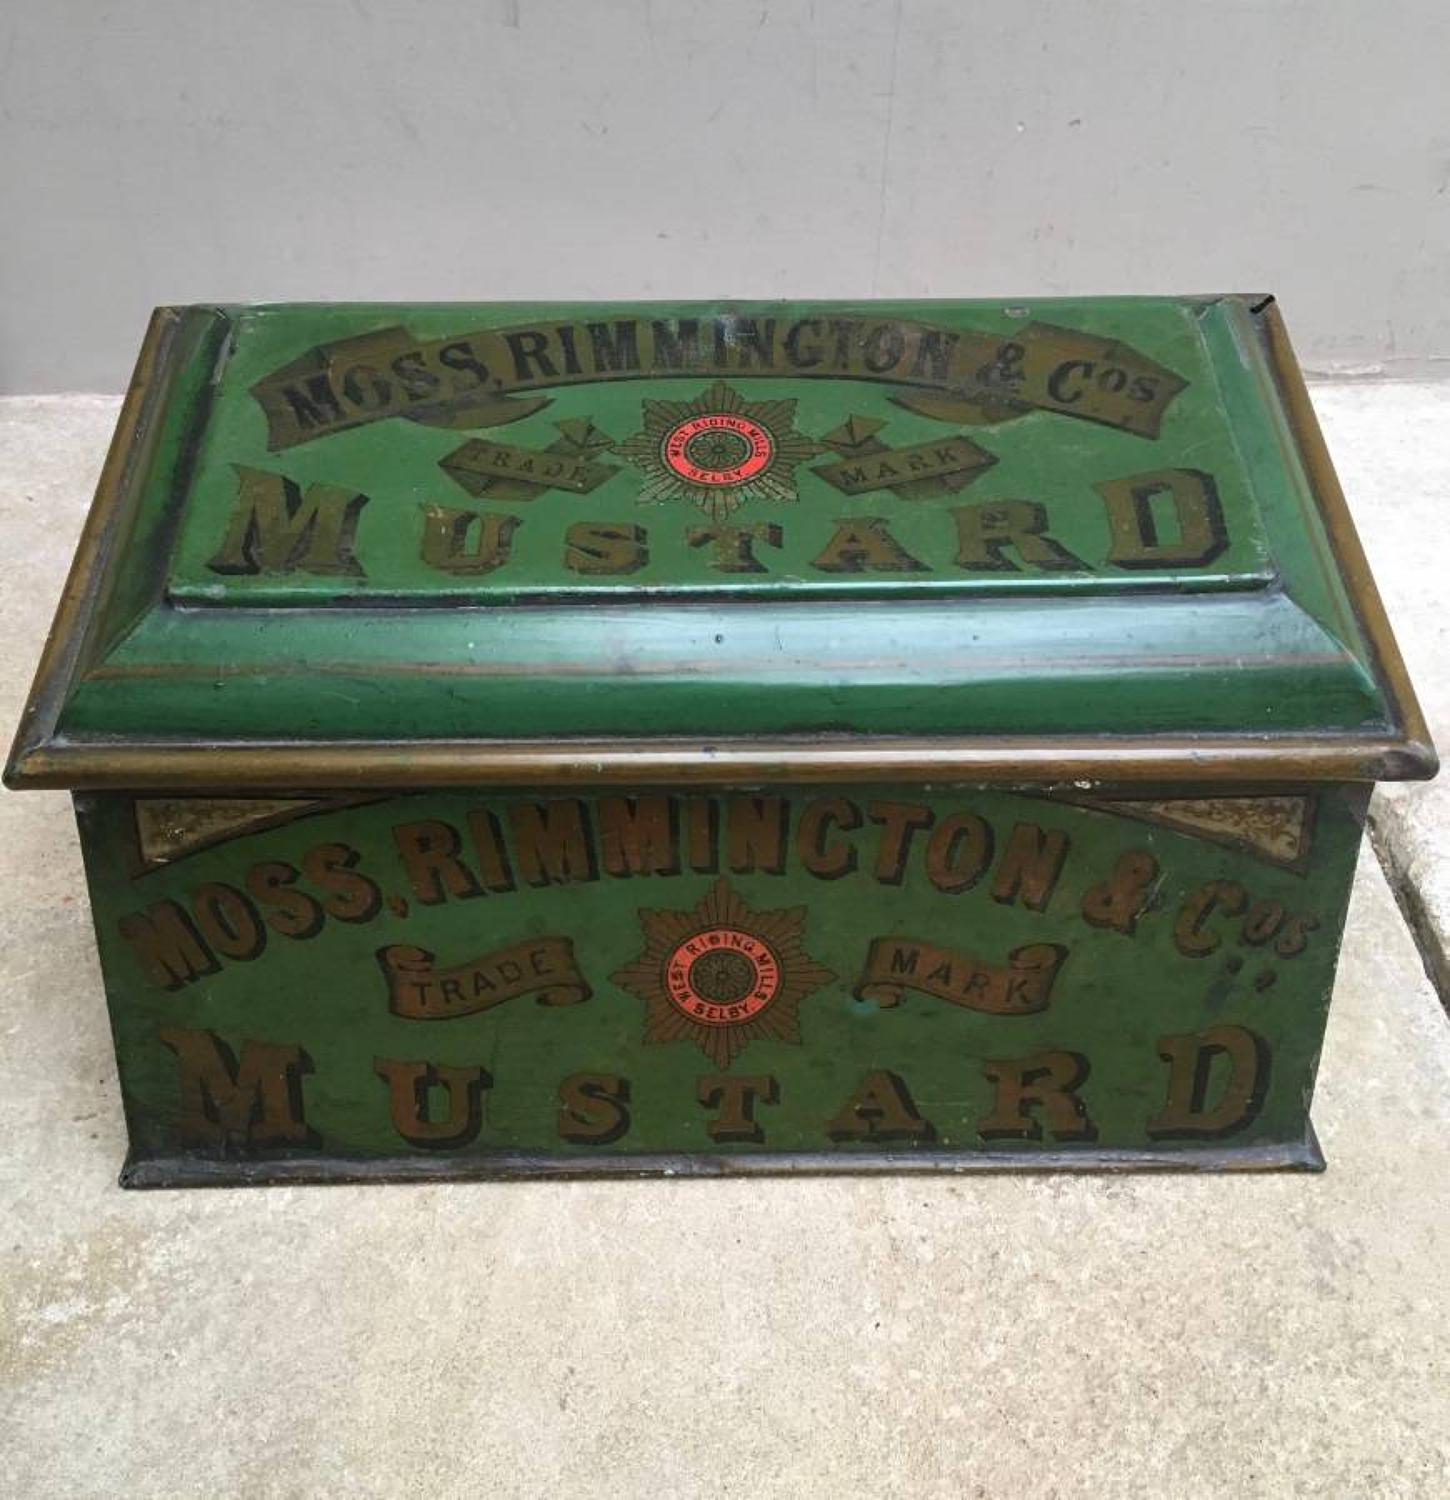 Rare Victorian Shops Counter Top Moss Rimmington & Cos Mustard Tin 187